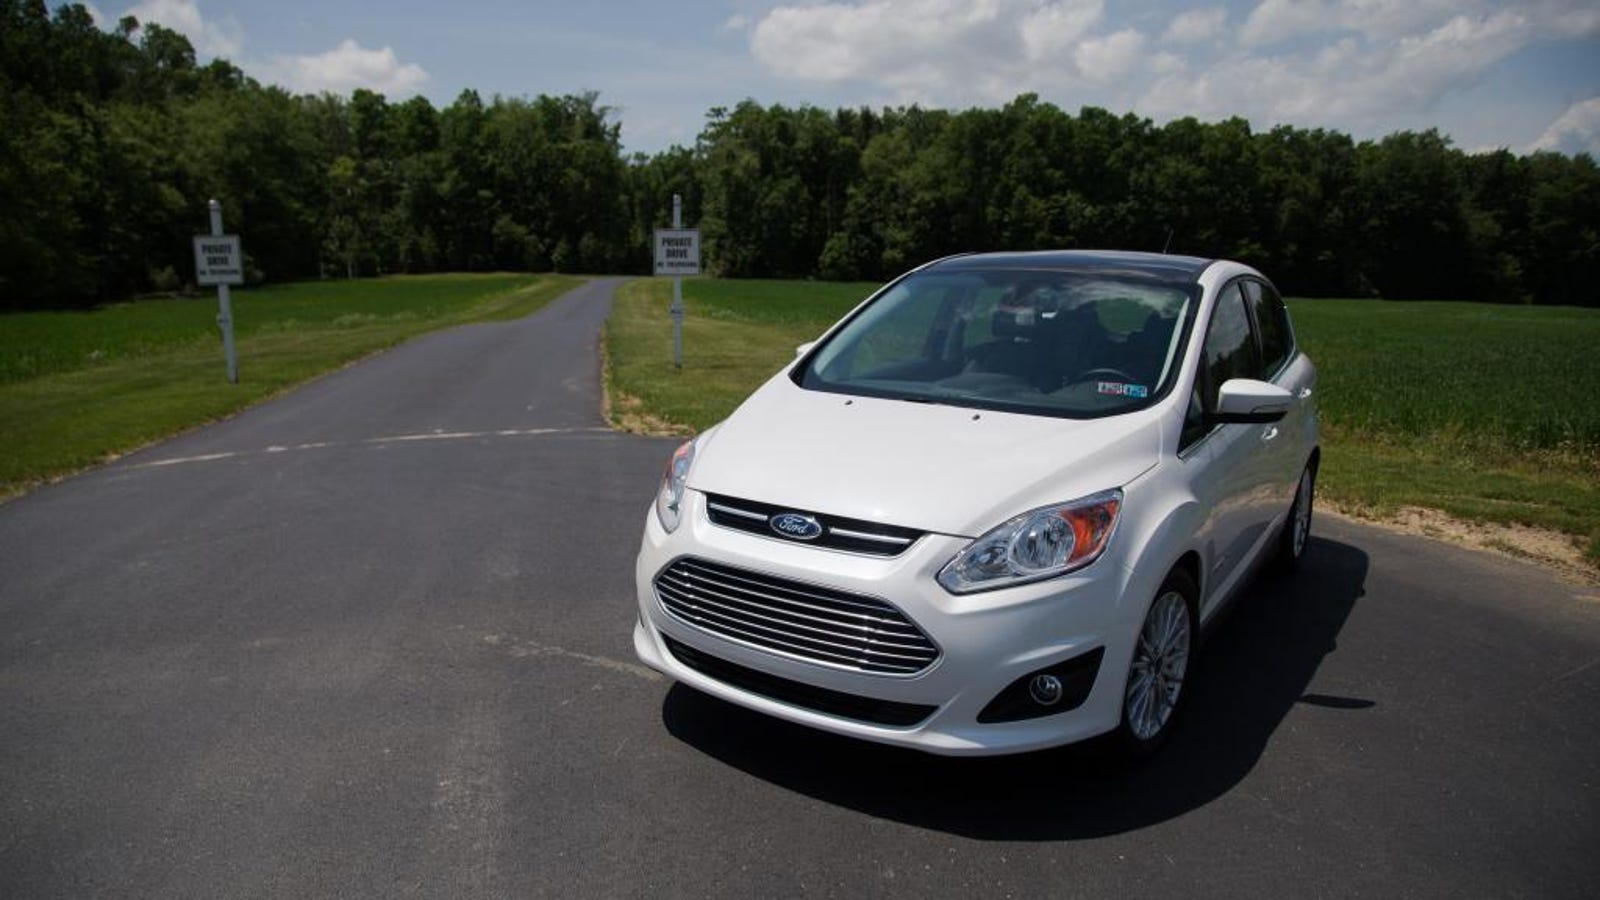 2013 ford c max the not jalopnik review. Black Bedroom Furniture Sets. Home Design Ideas